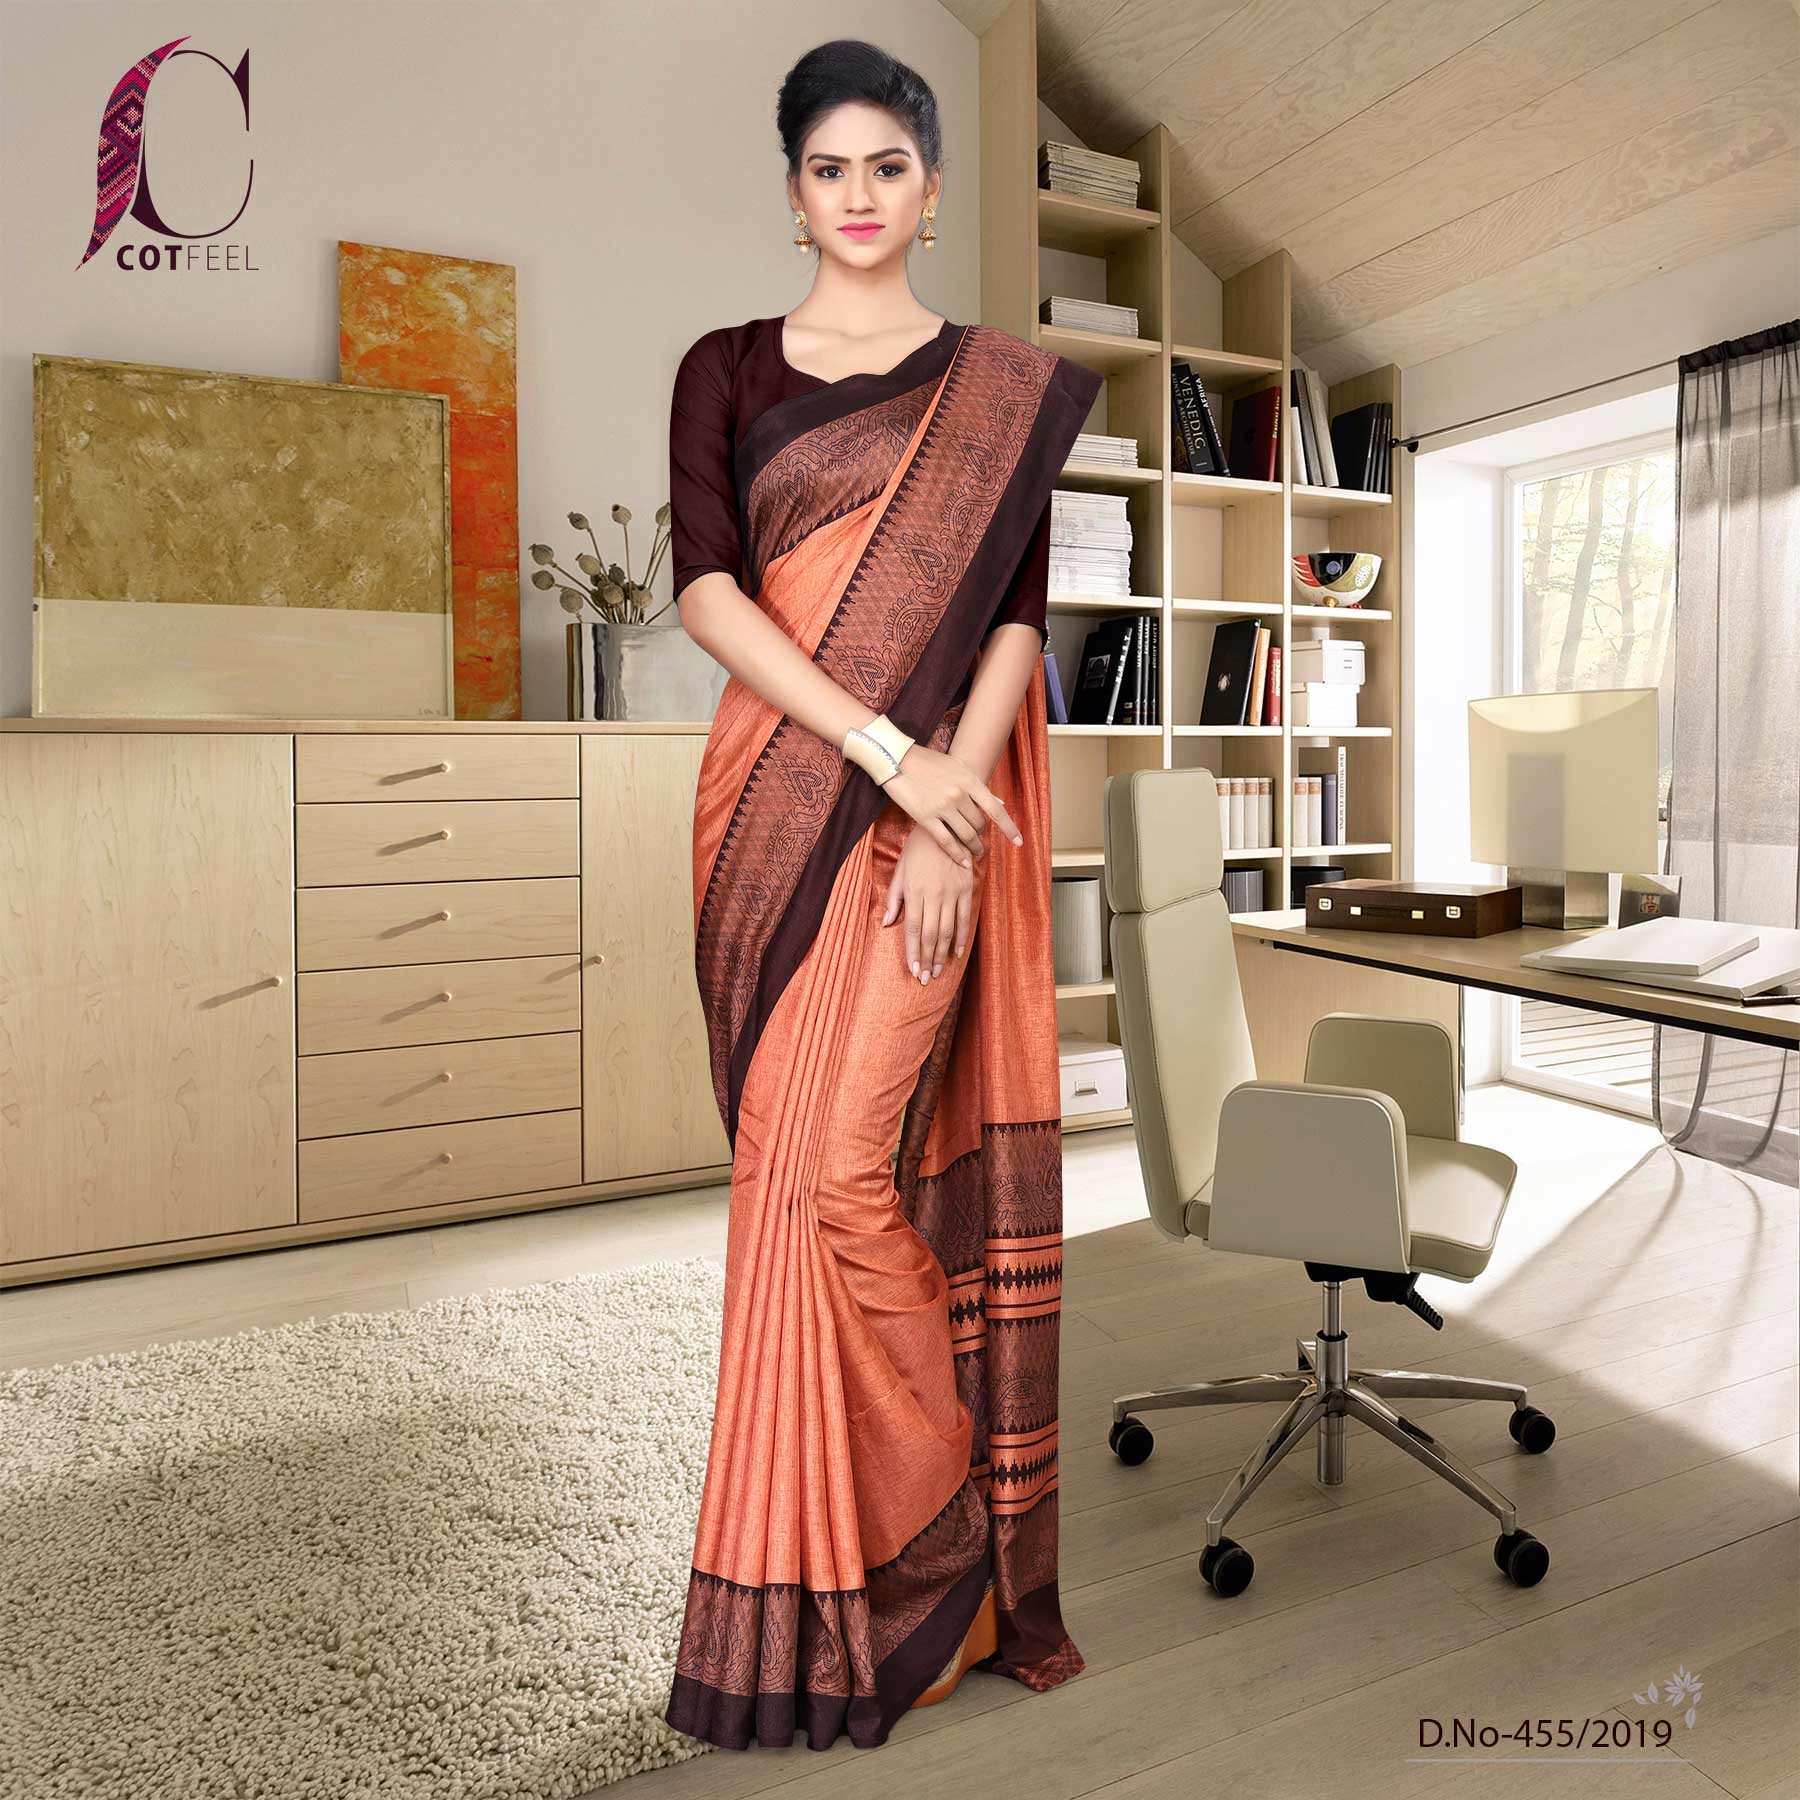 Orange and coffee tripura cotton school uniform saree